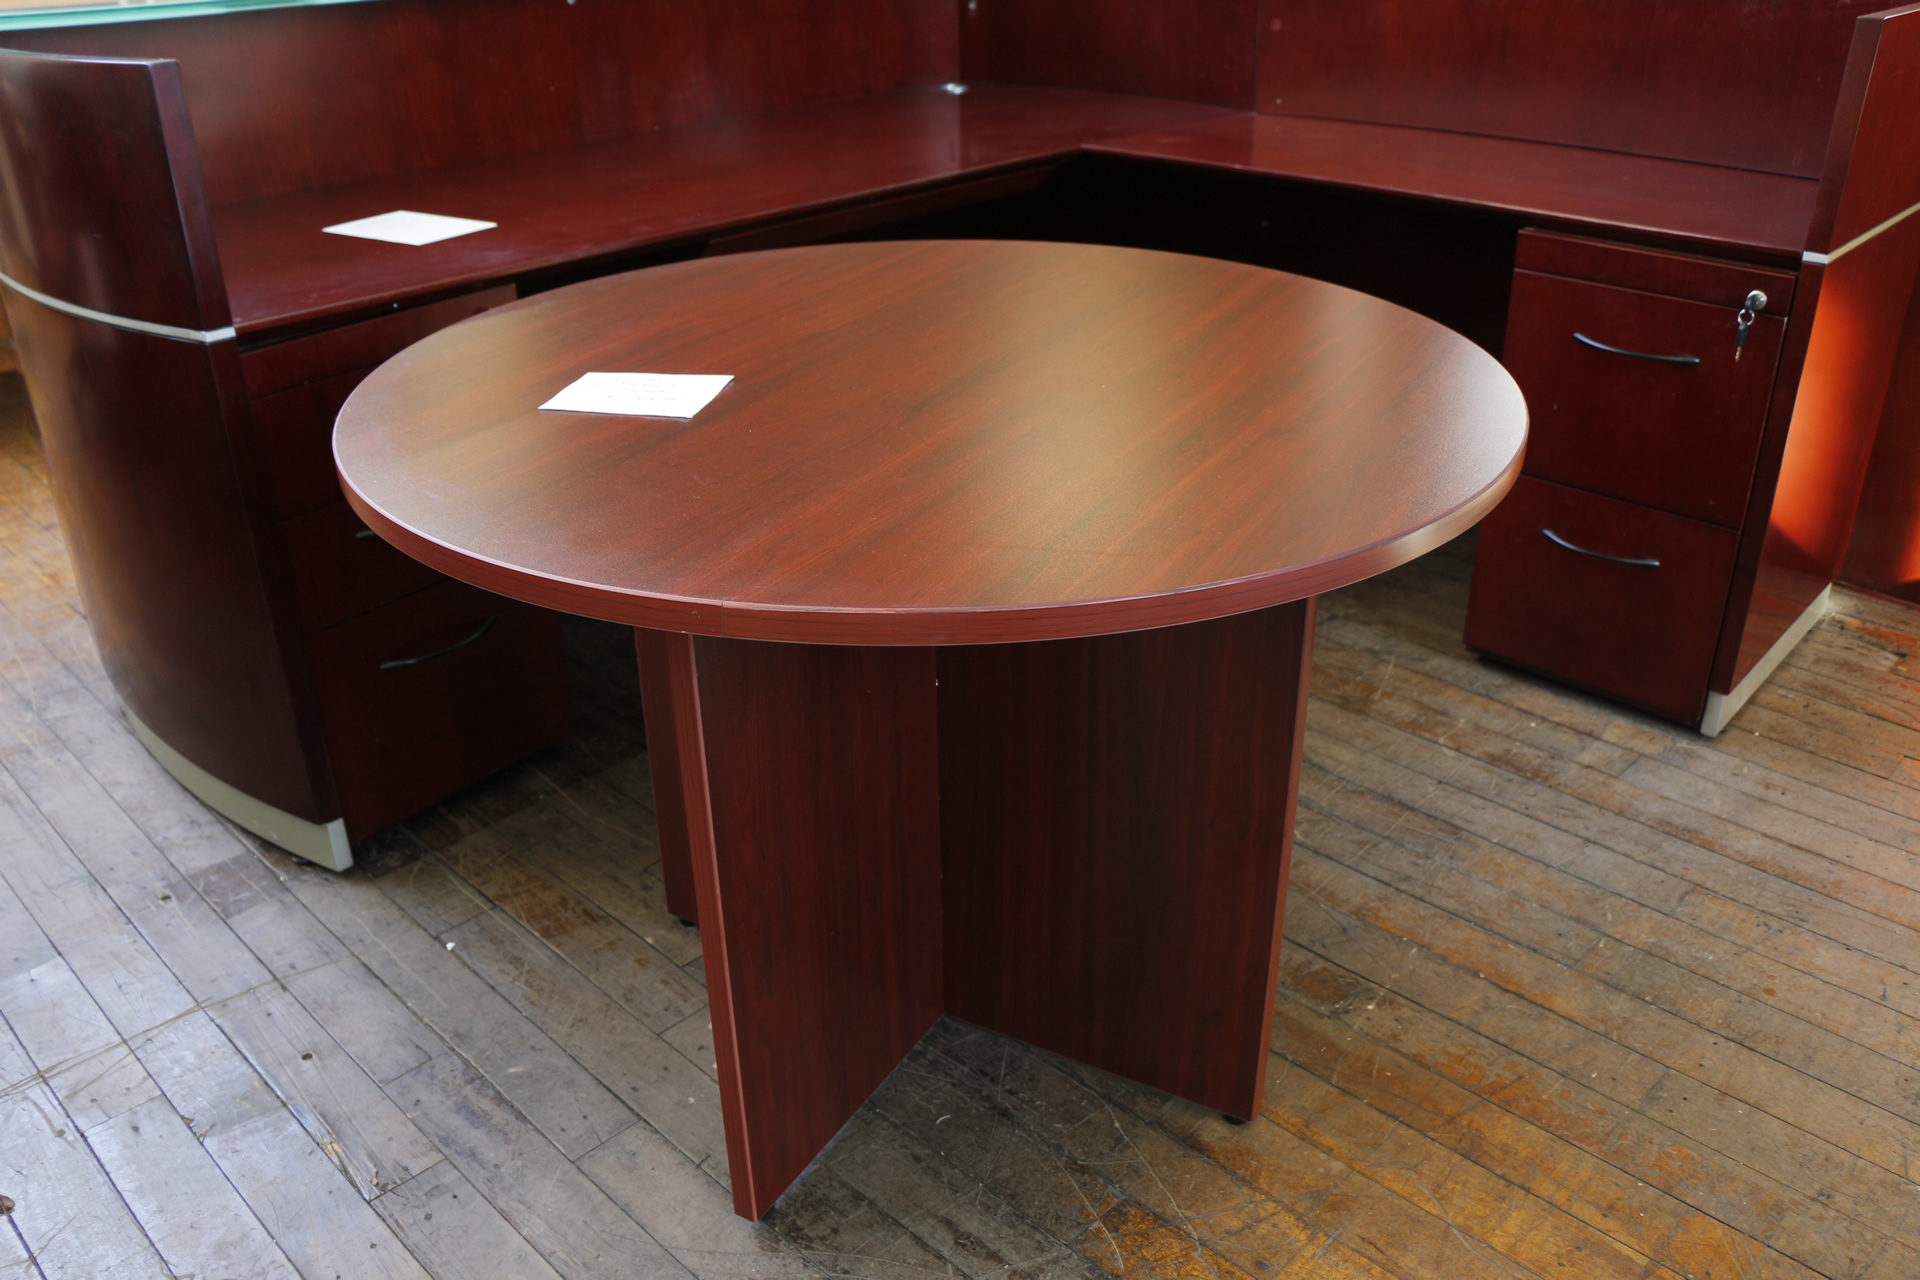 peartreeofficefurniture_peartreeofficefurniture_mg_5067.jpg